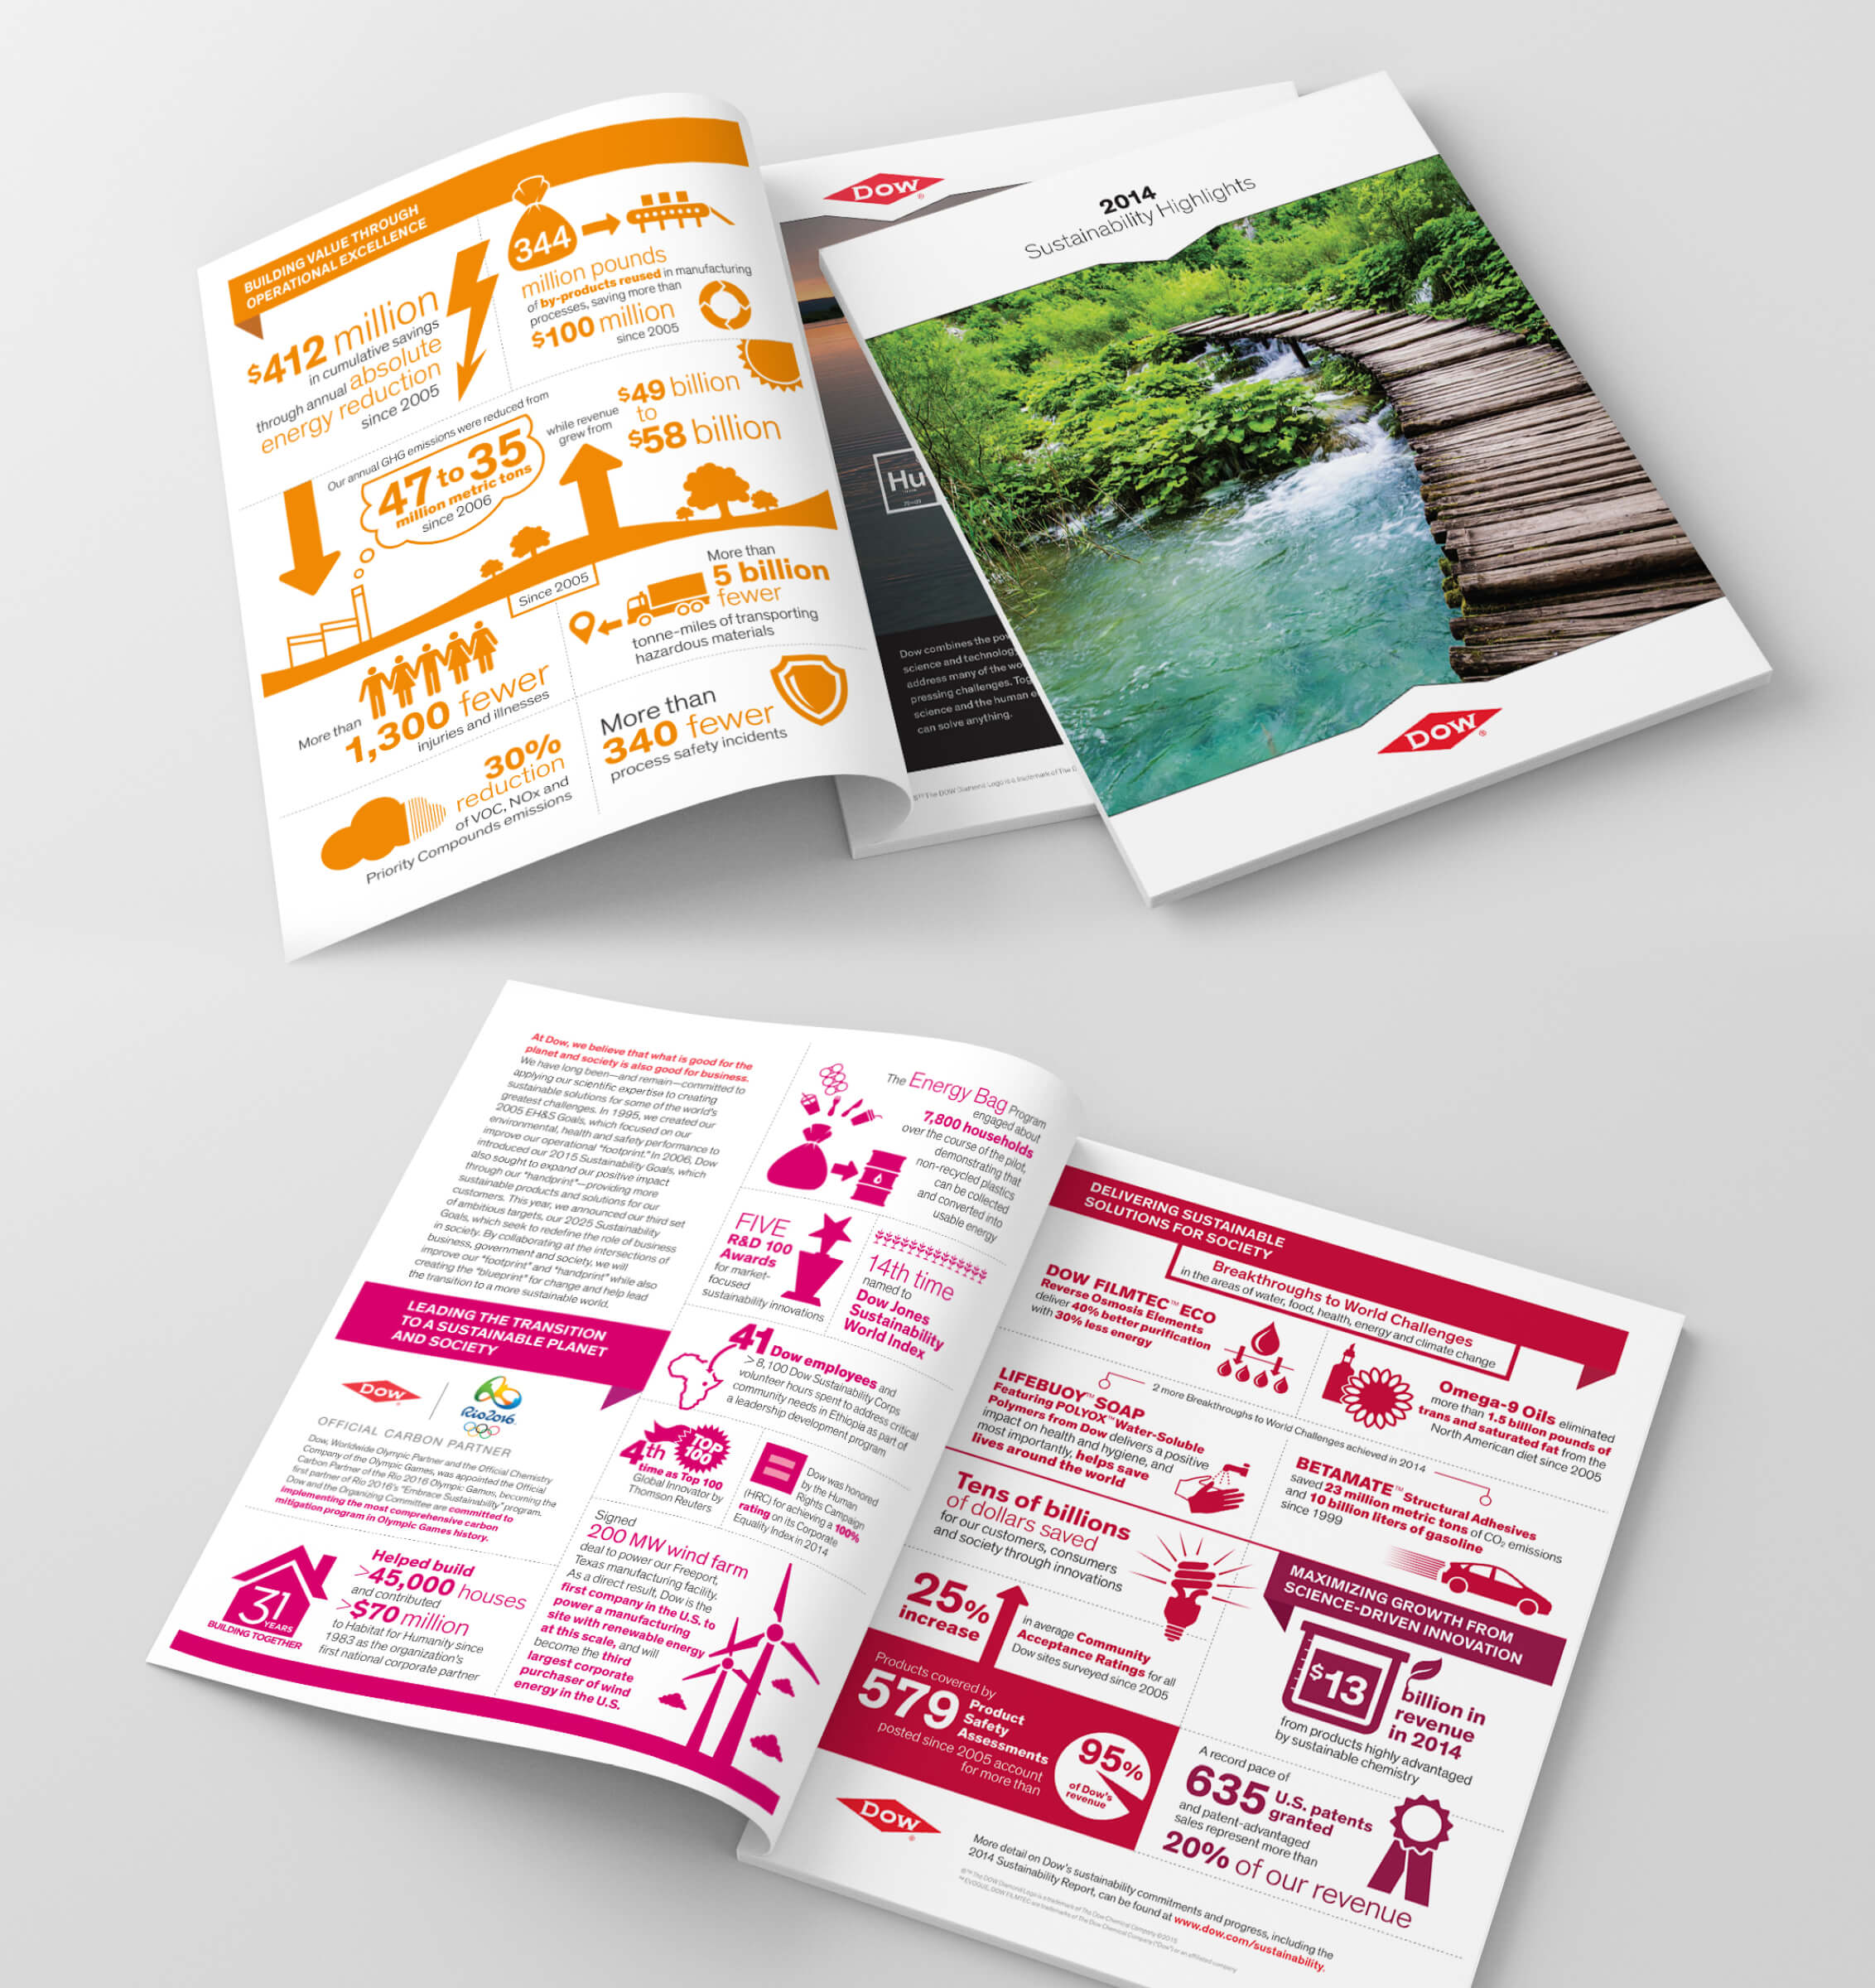 dow sustainability highlights brochure image